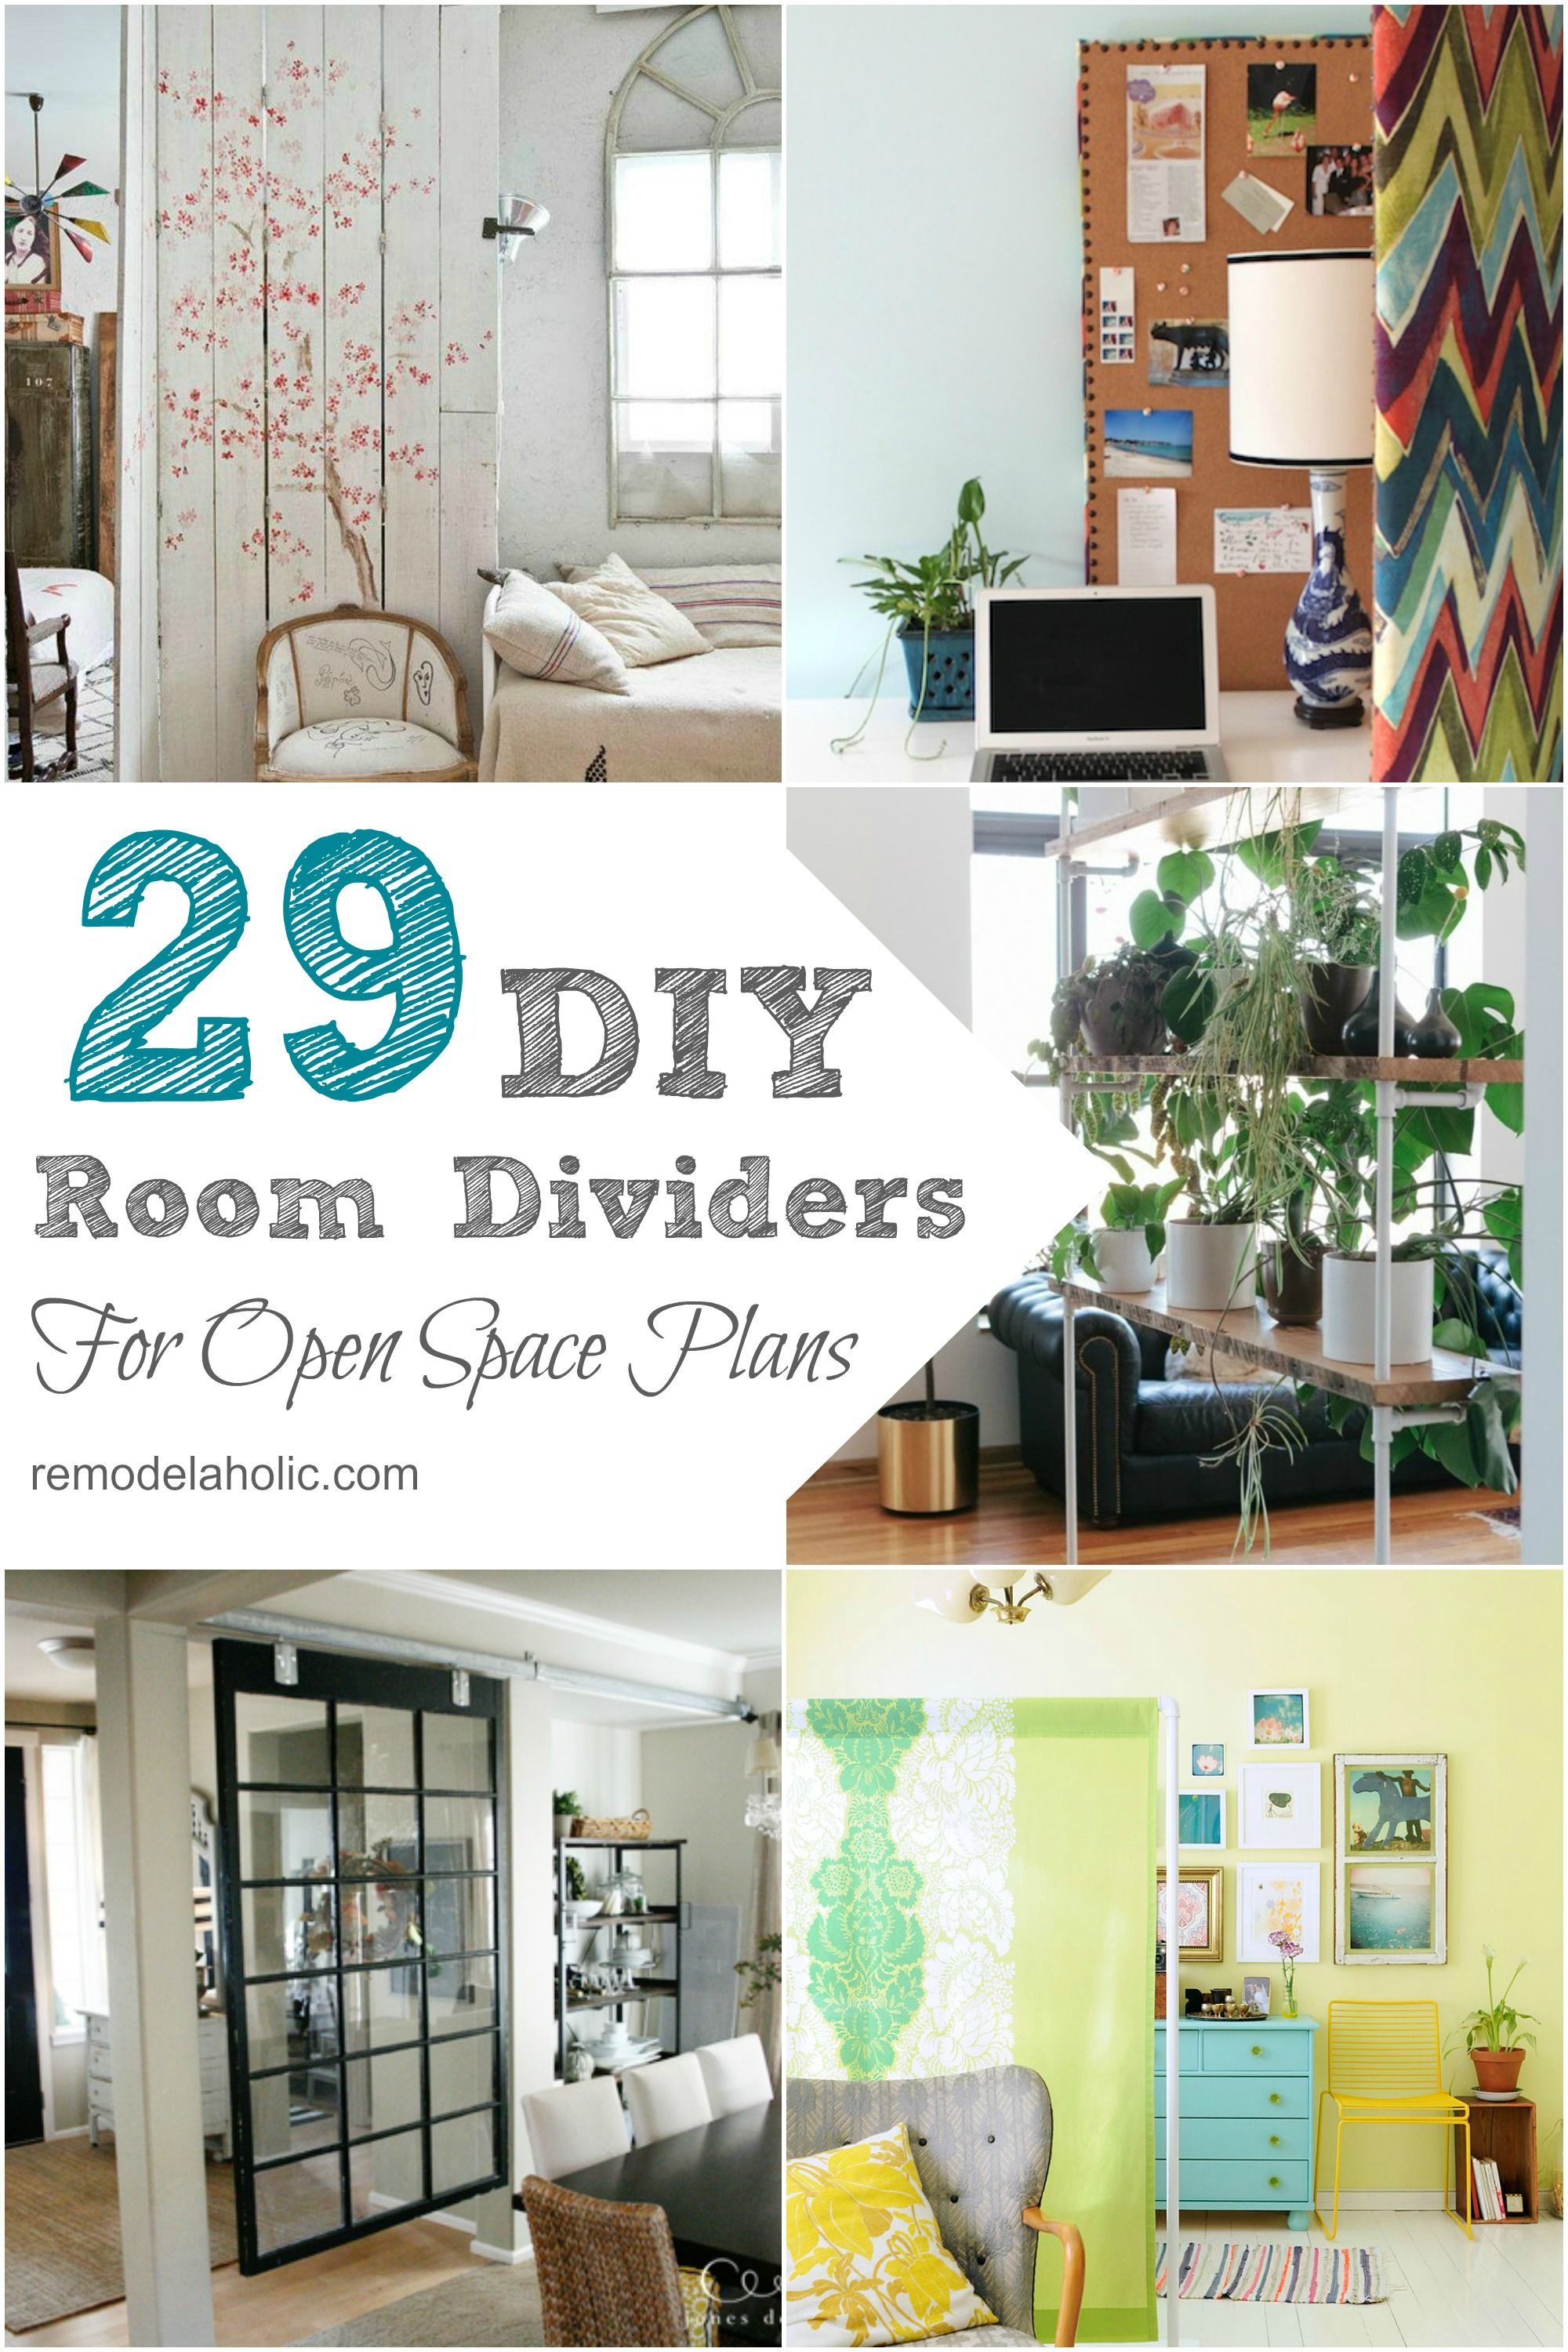 How To Make Room Dividers Cheap You Can Create New Spaces In Your Home By Building A Room